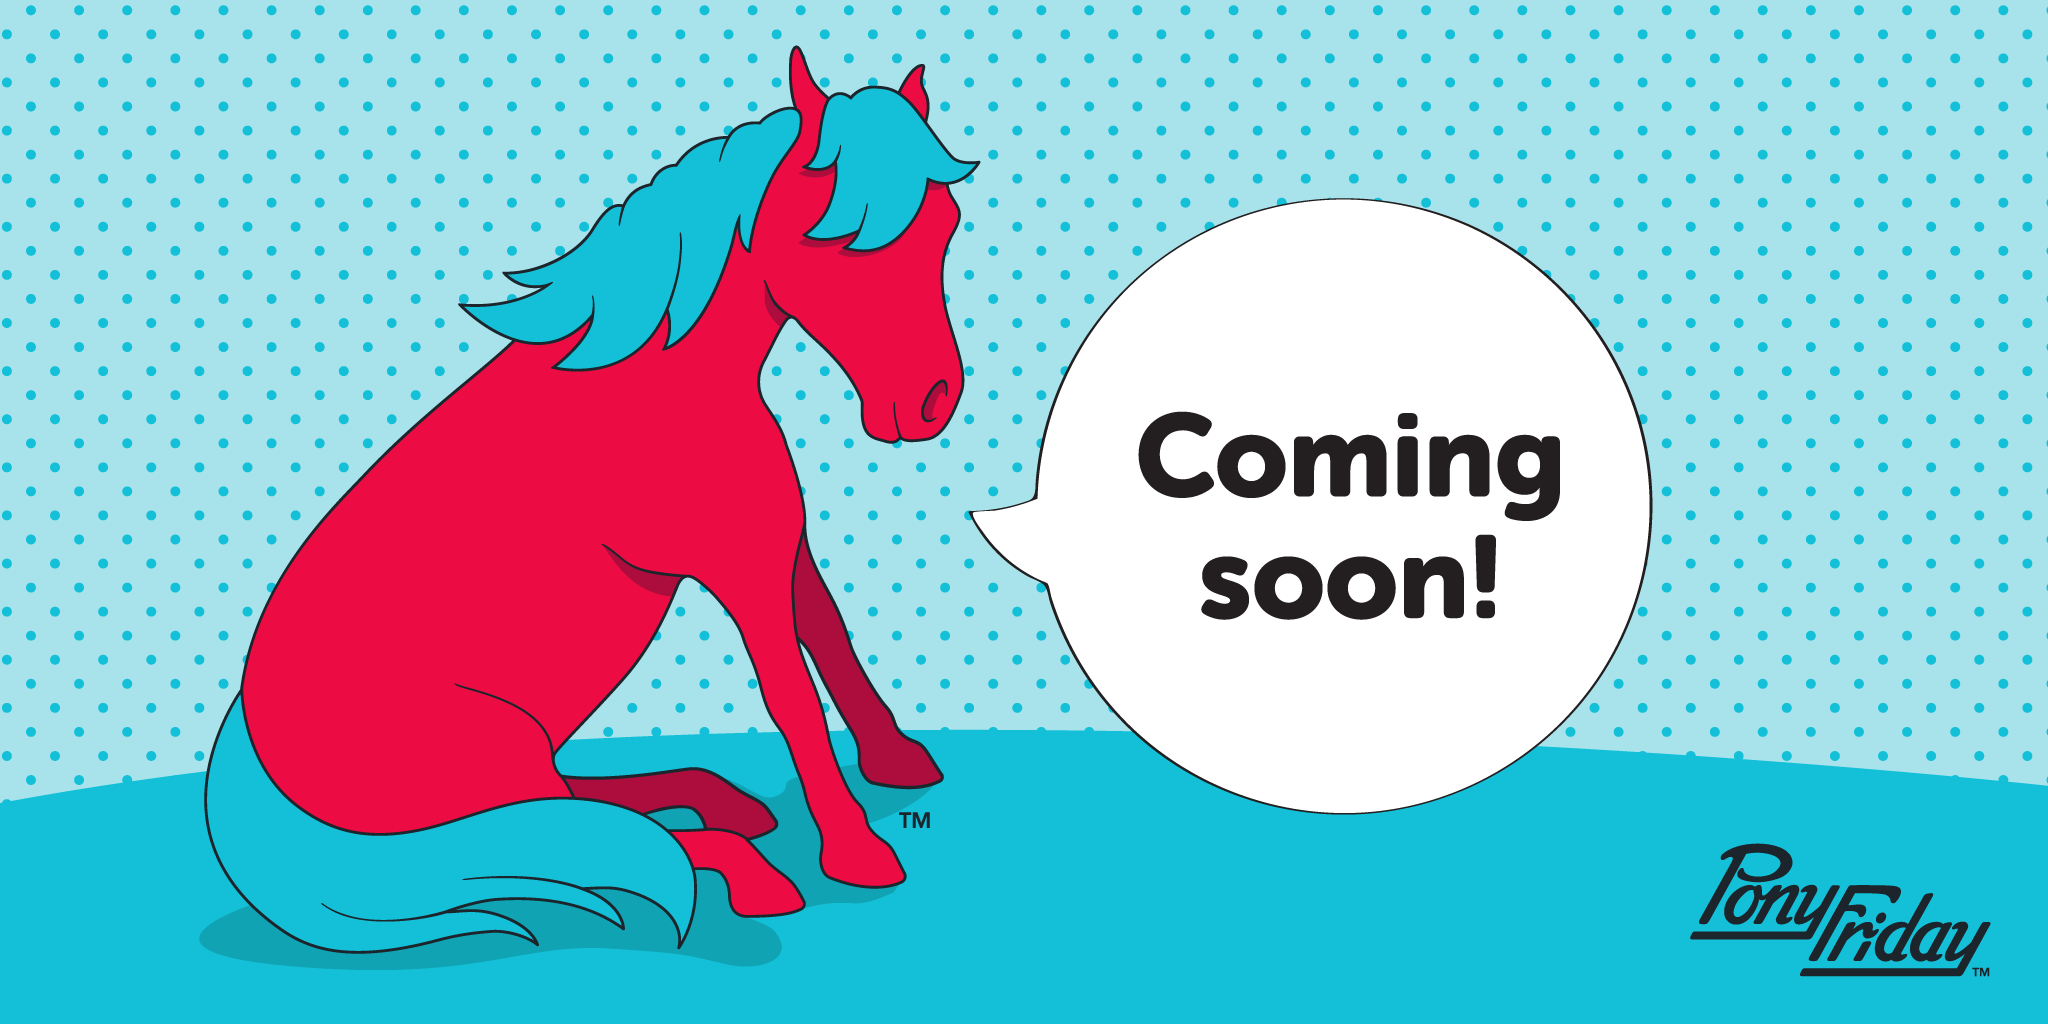 Pony-Friday-Sitting-Horse-Coming-Soon-Comic-Blog-Header.png